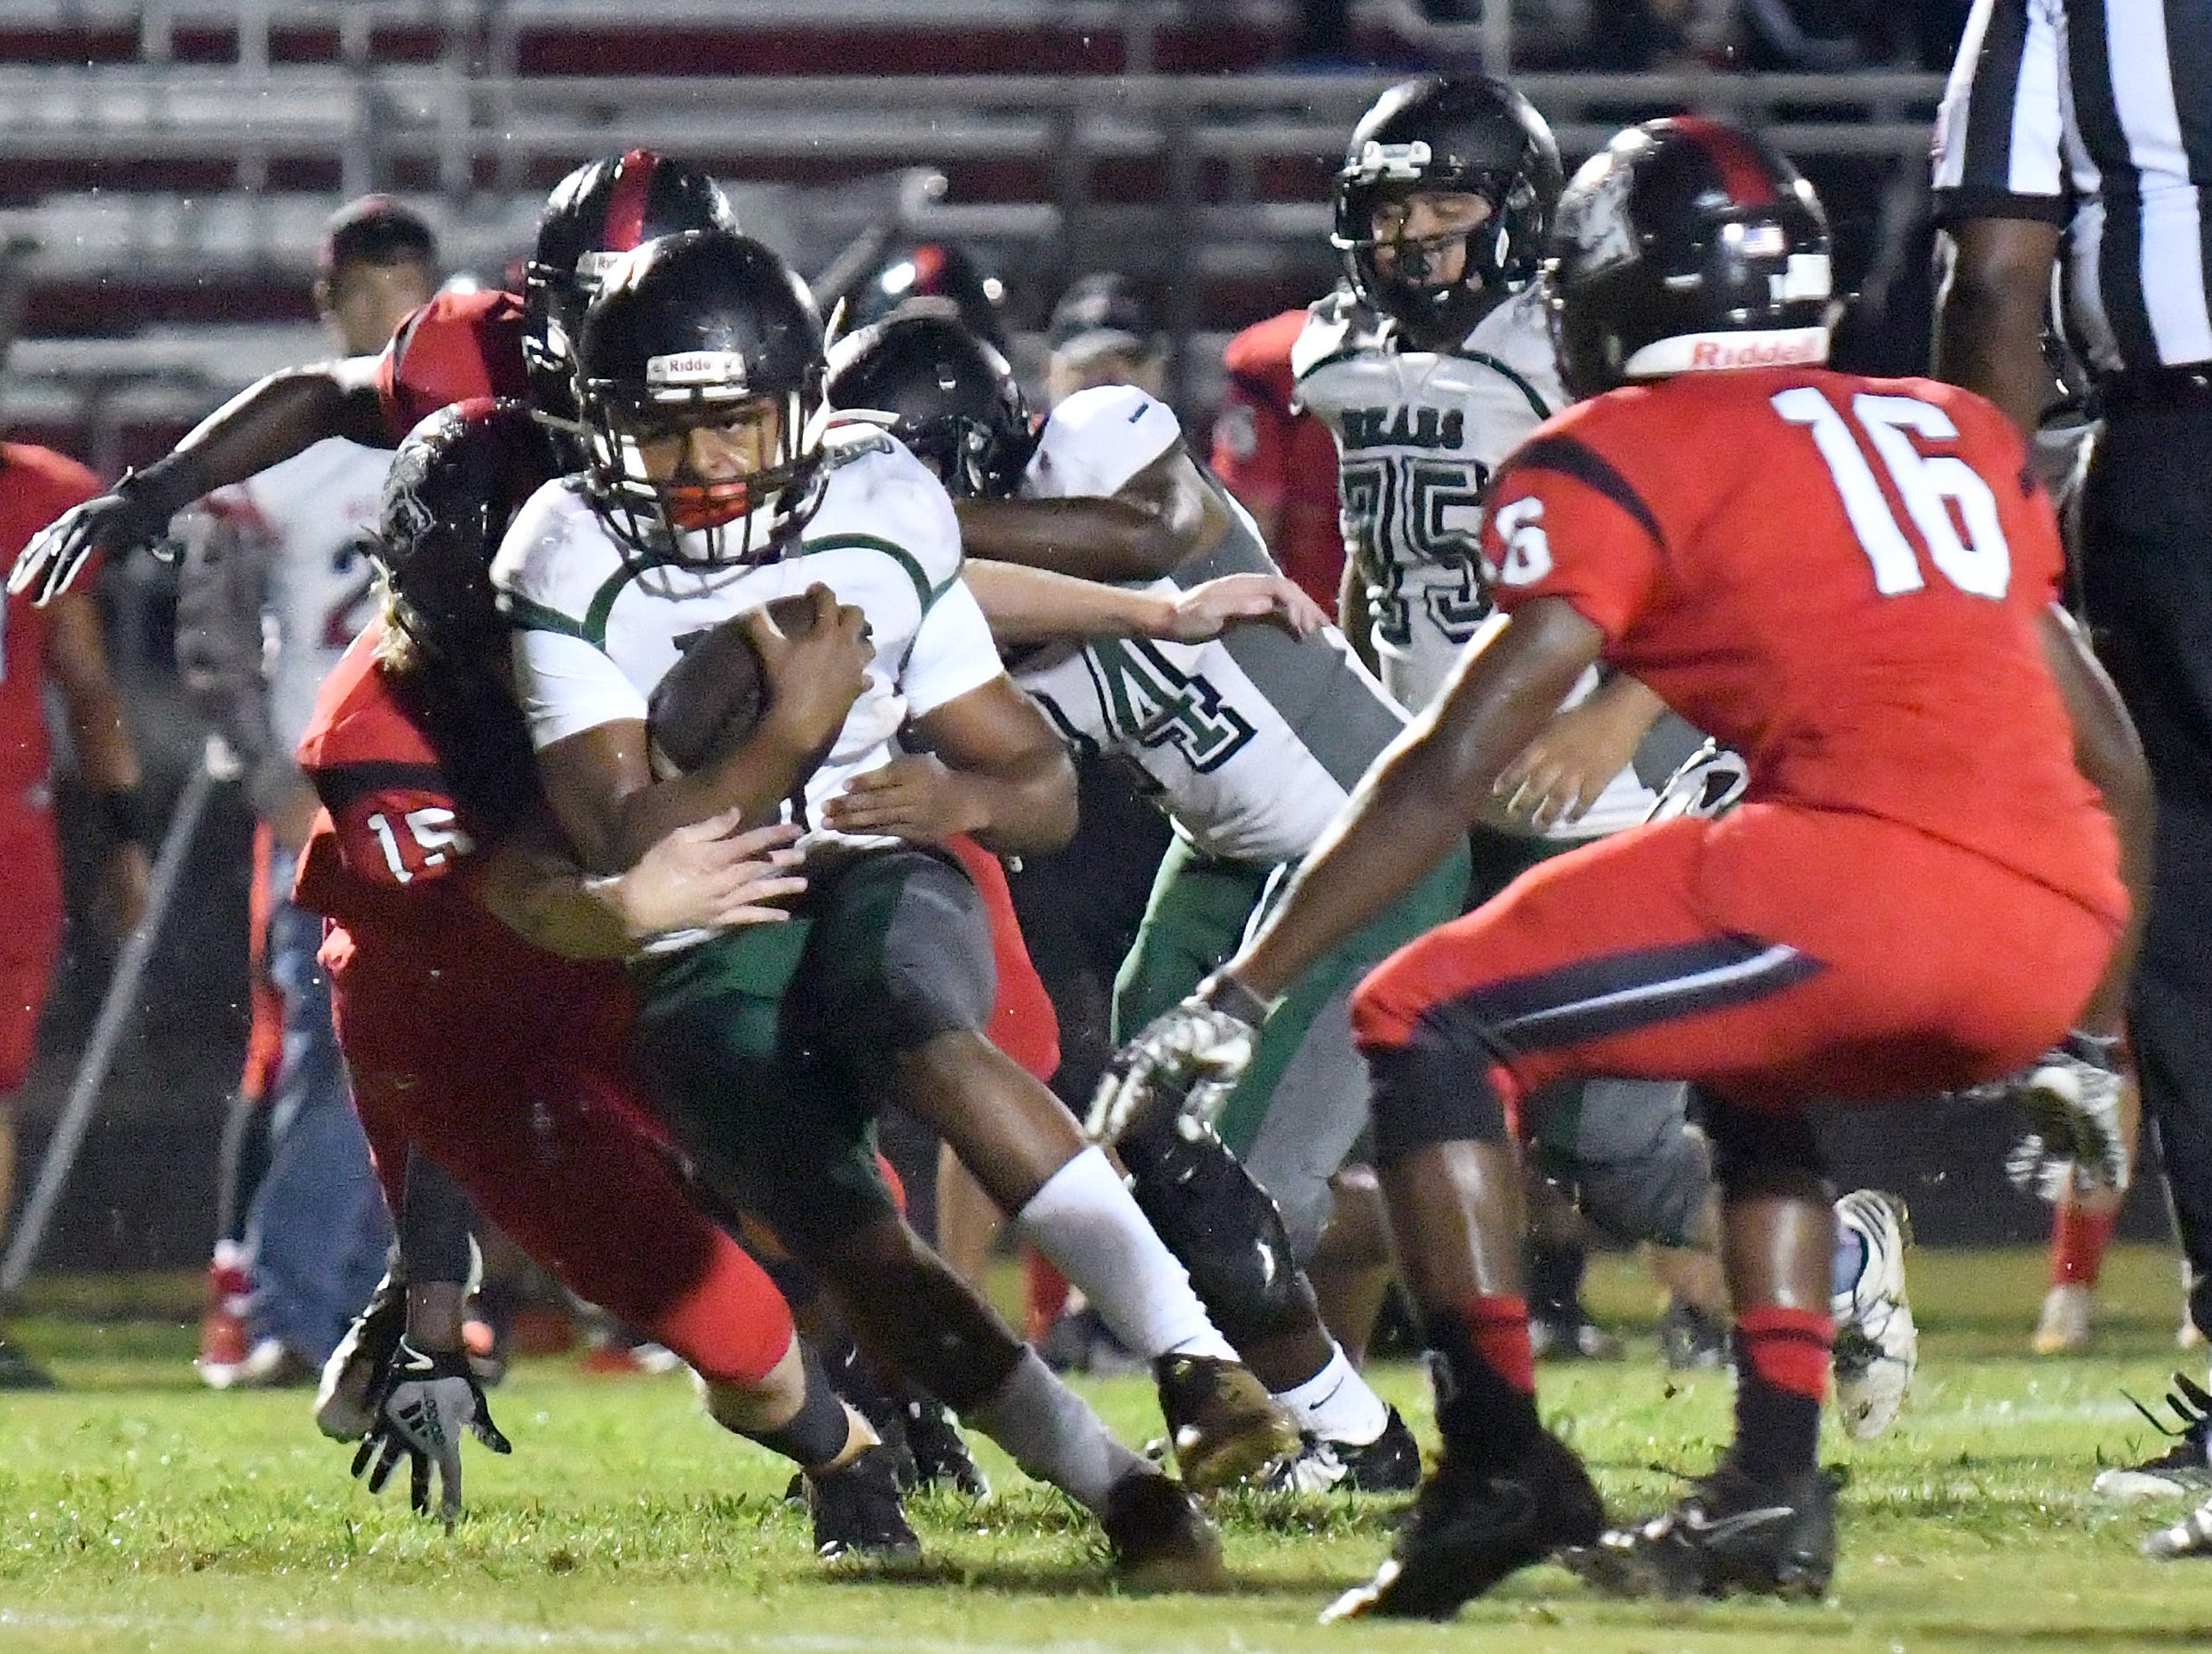 South Fort Myers High School host Palmetto Ridge High School in Fort Myers ,Friday, Sept. 21, 2018.